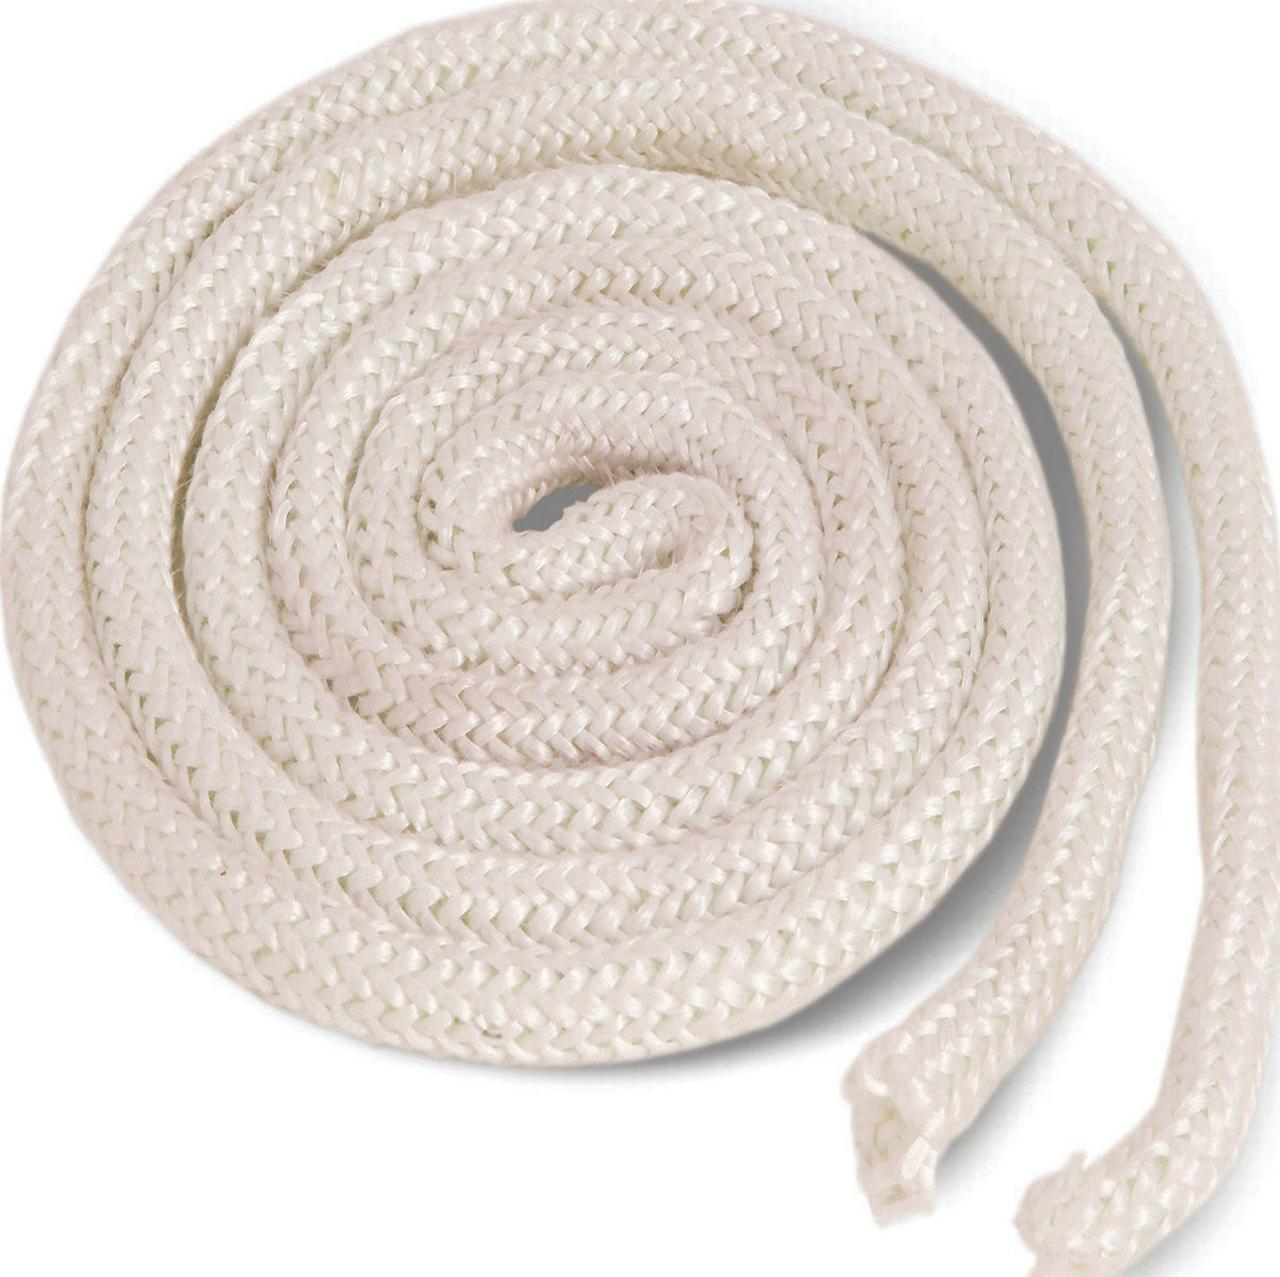 Imperial GA0155 Gasket Rope, 1/2 in Dia x 6 ft L